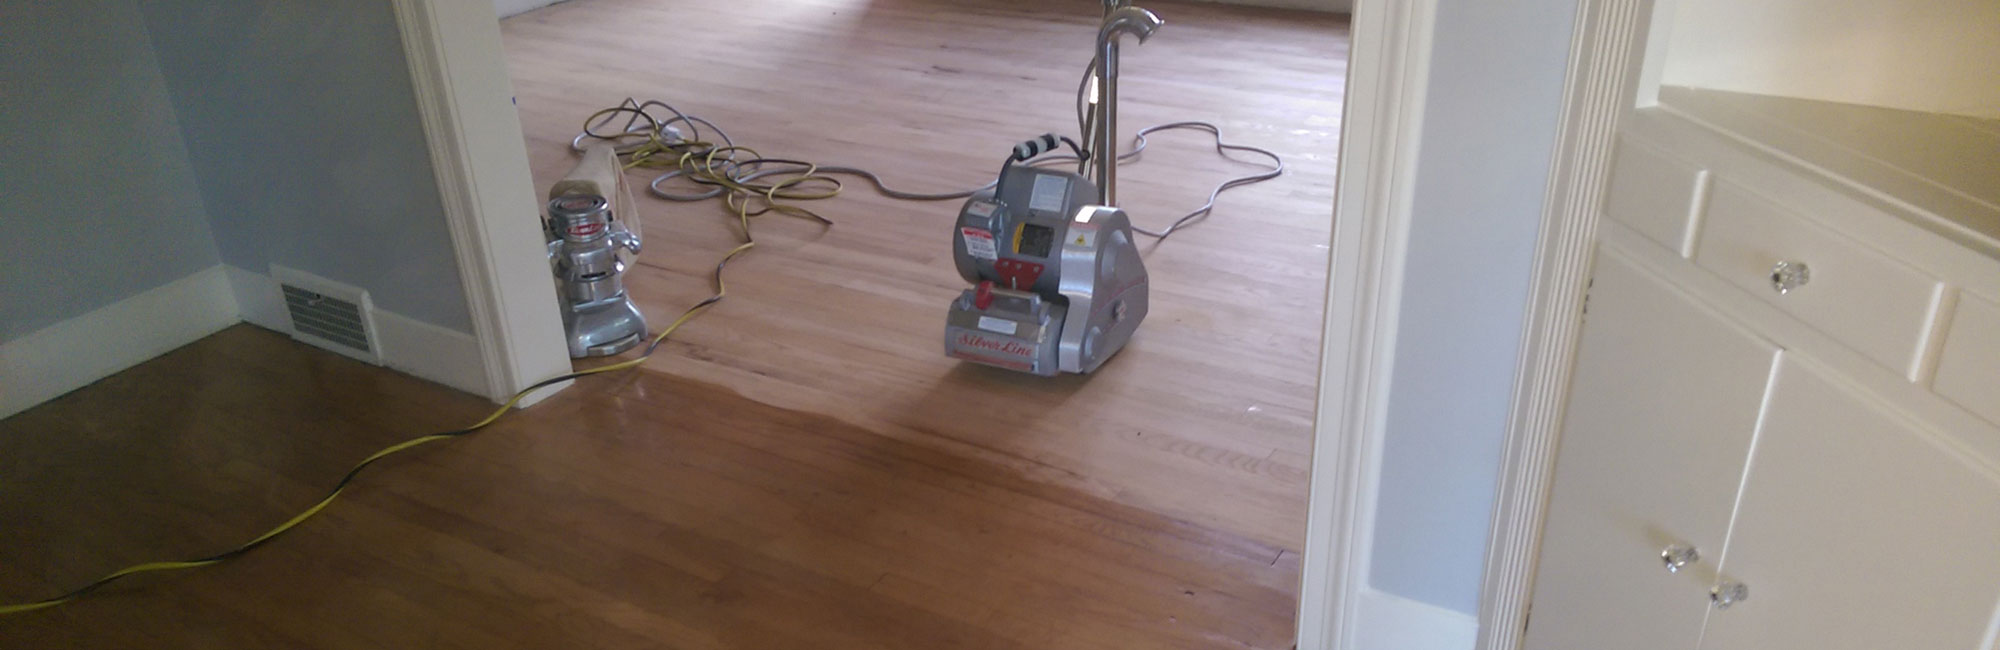 3 Brothers Buffing and Floorcare